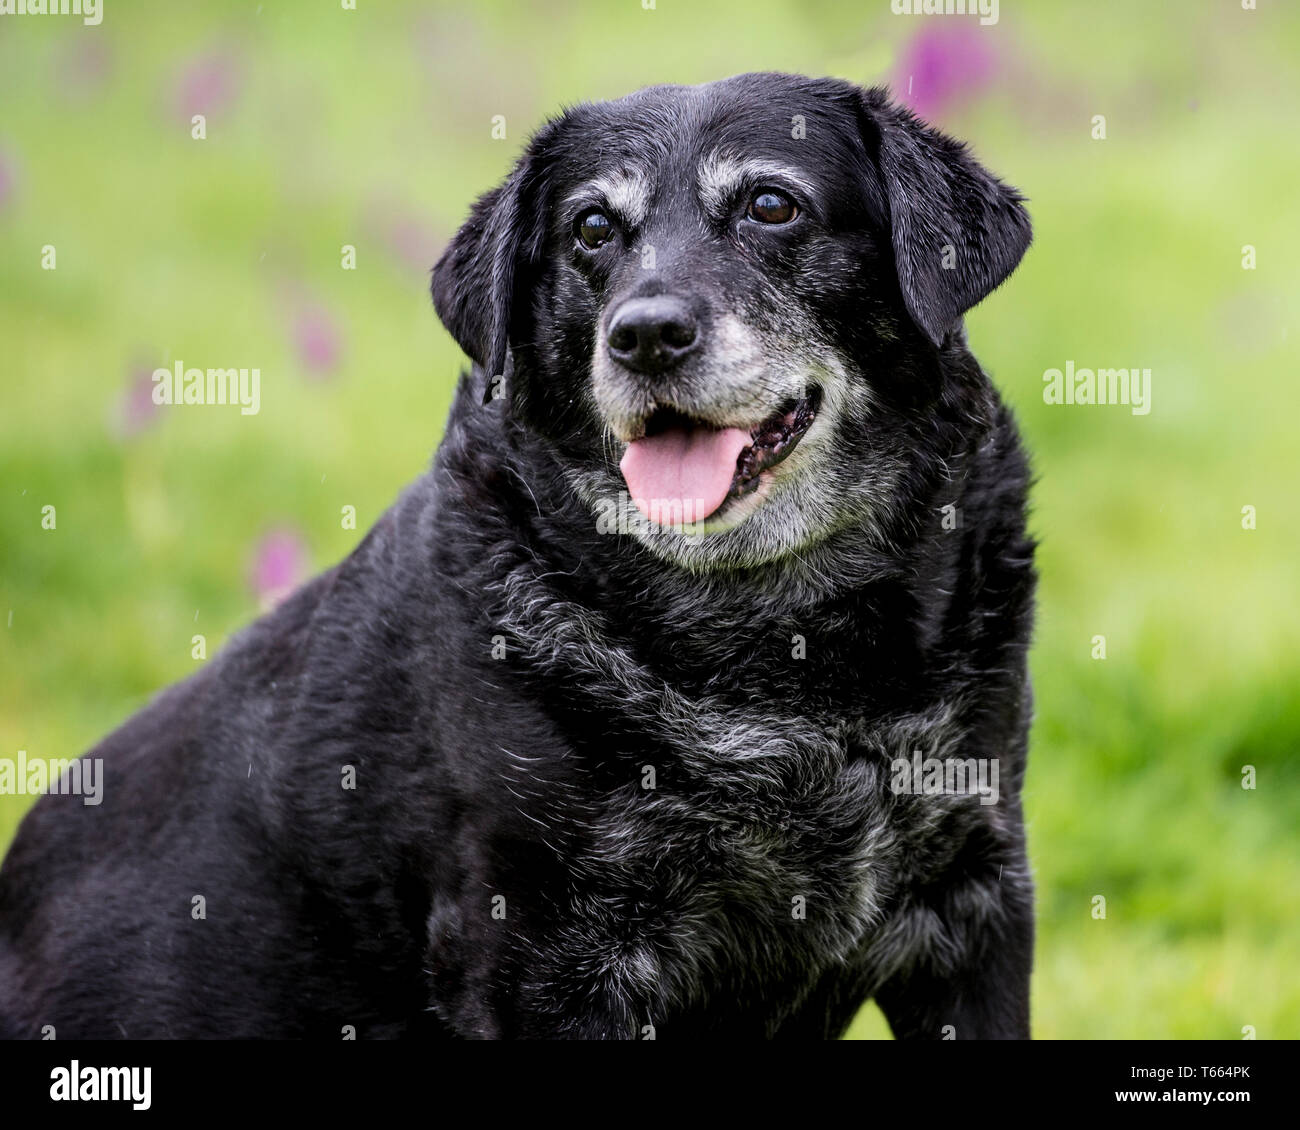 fat overweight dog - Stock Image